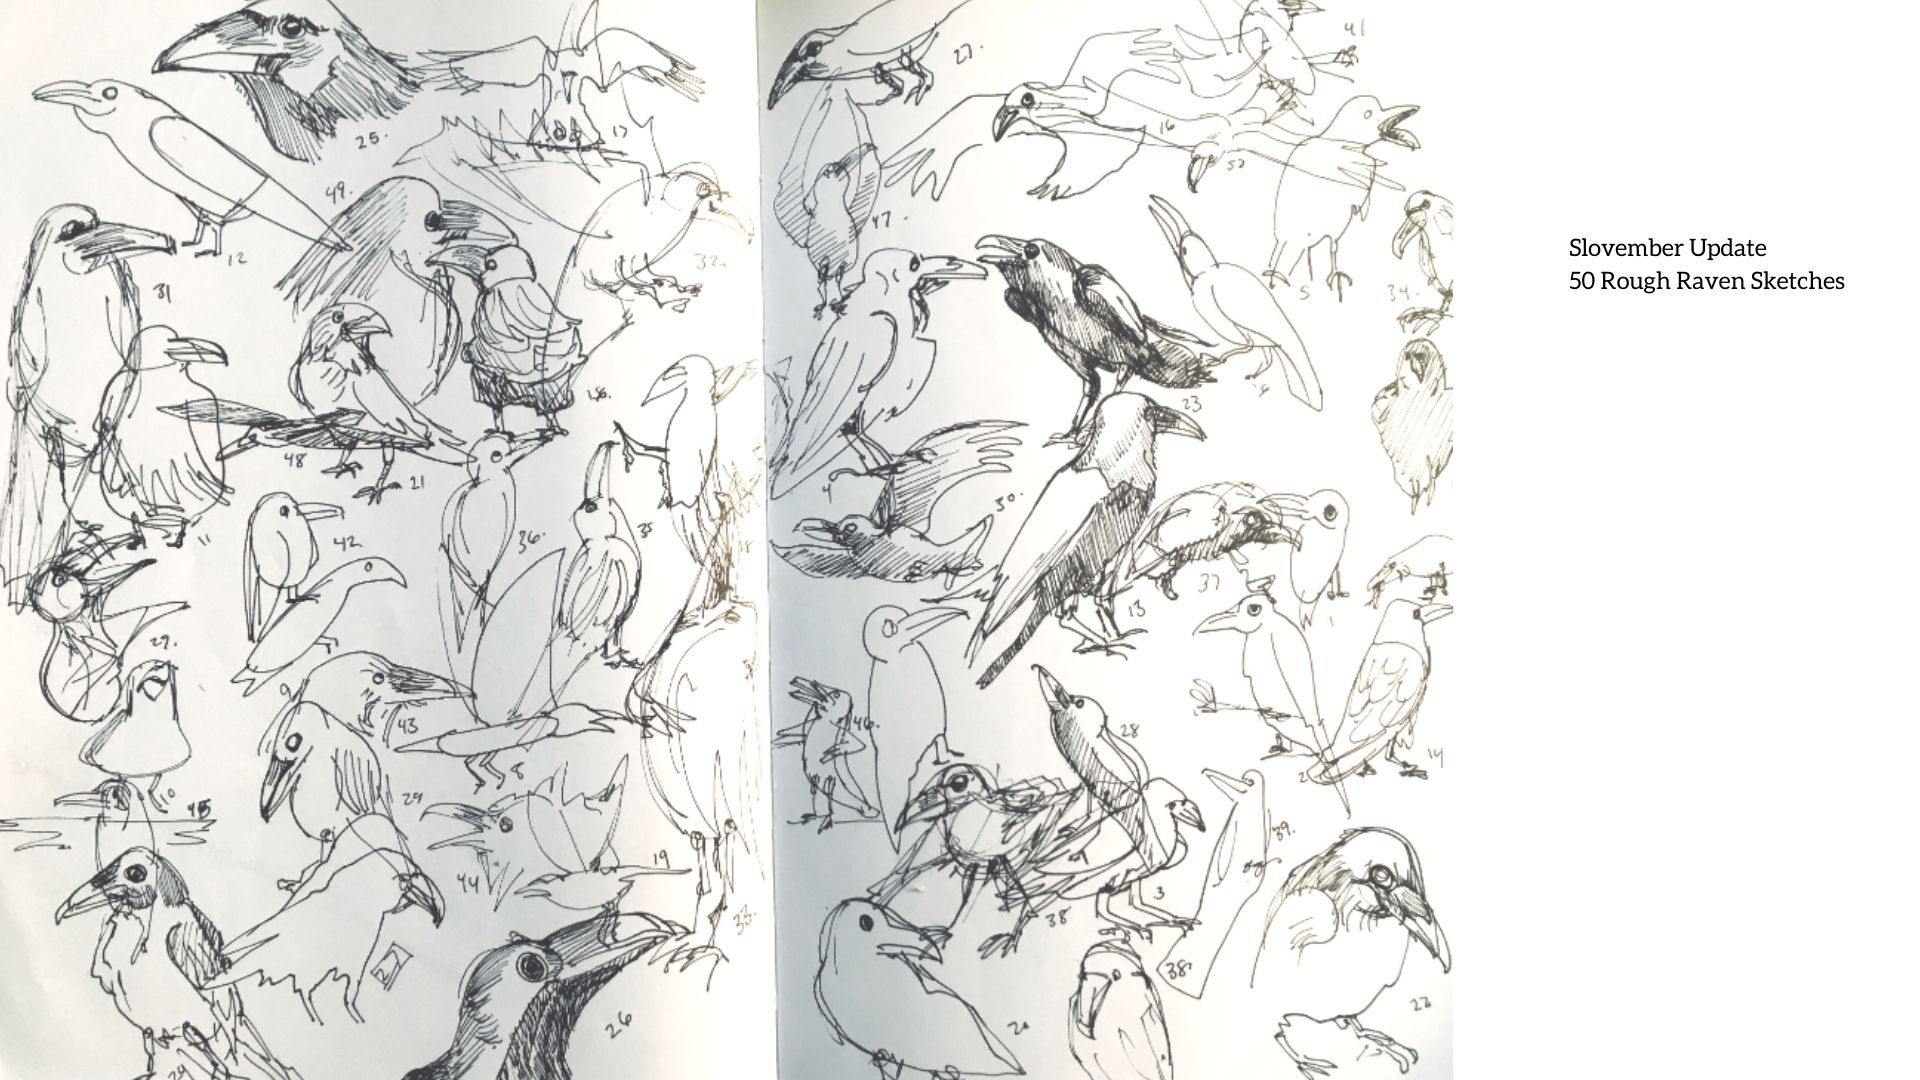 Slovember Update 50 Rough Raven Sketches (3).jpg